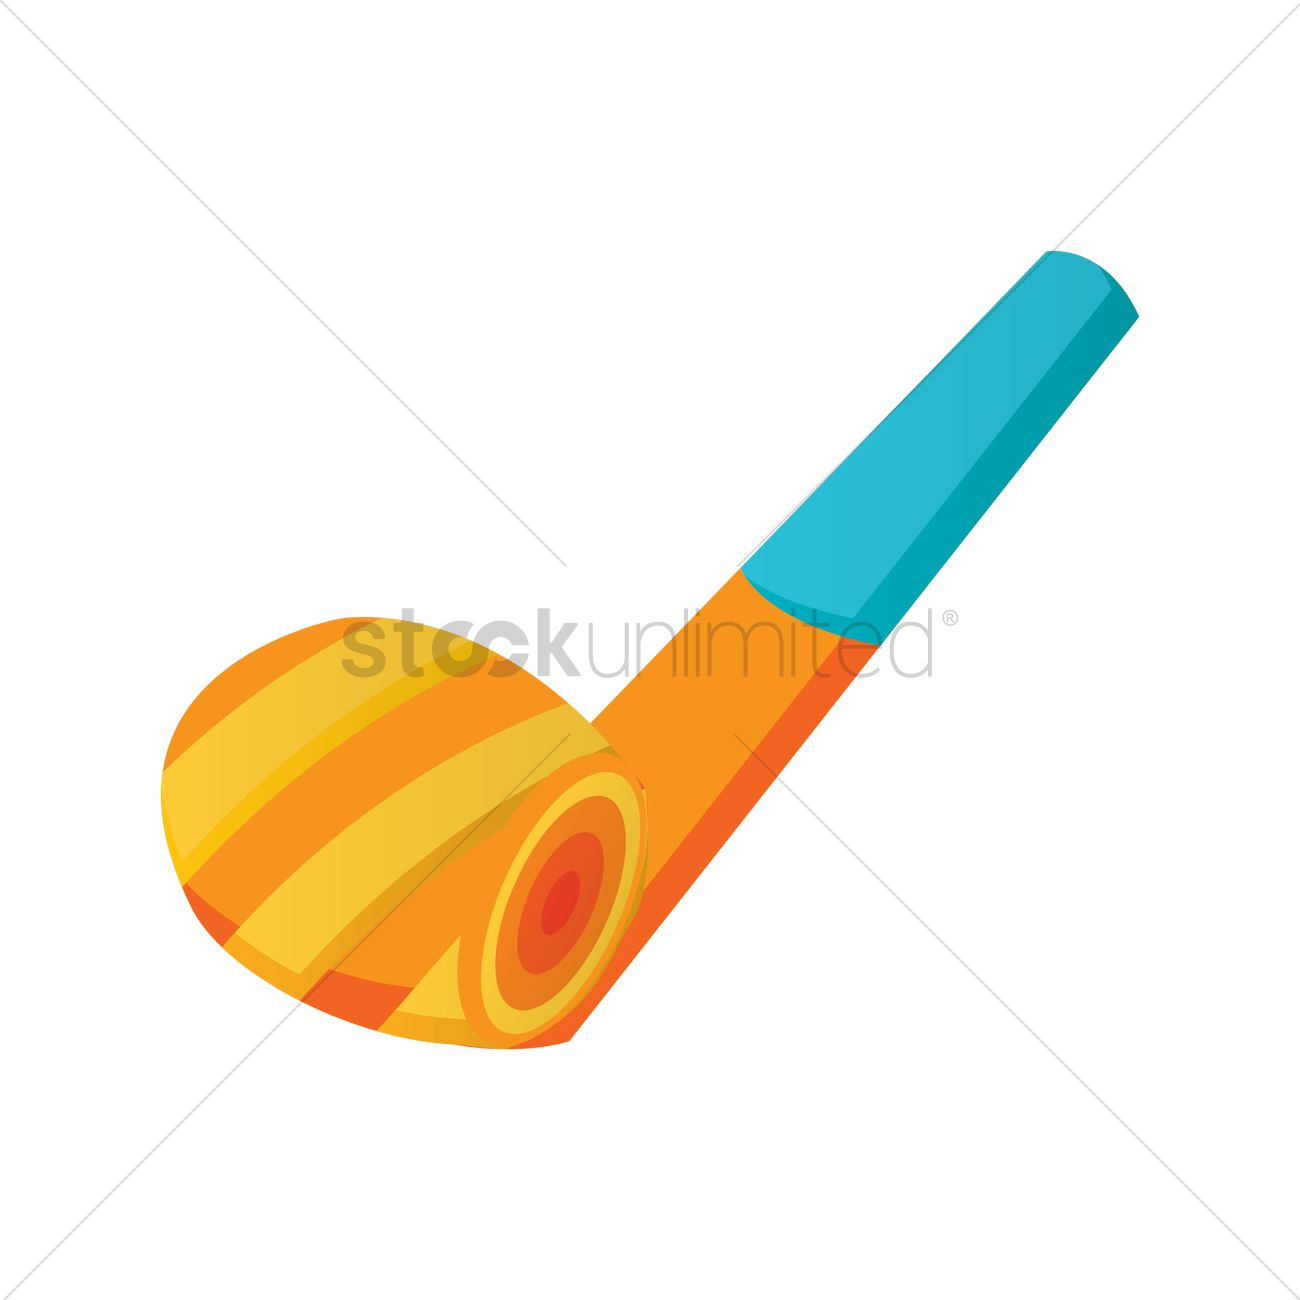 Party Blower: Party Horn Blower Vector Image - 1817389